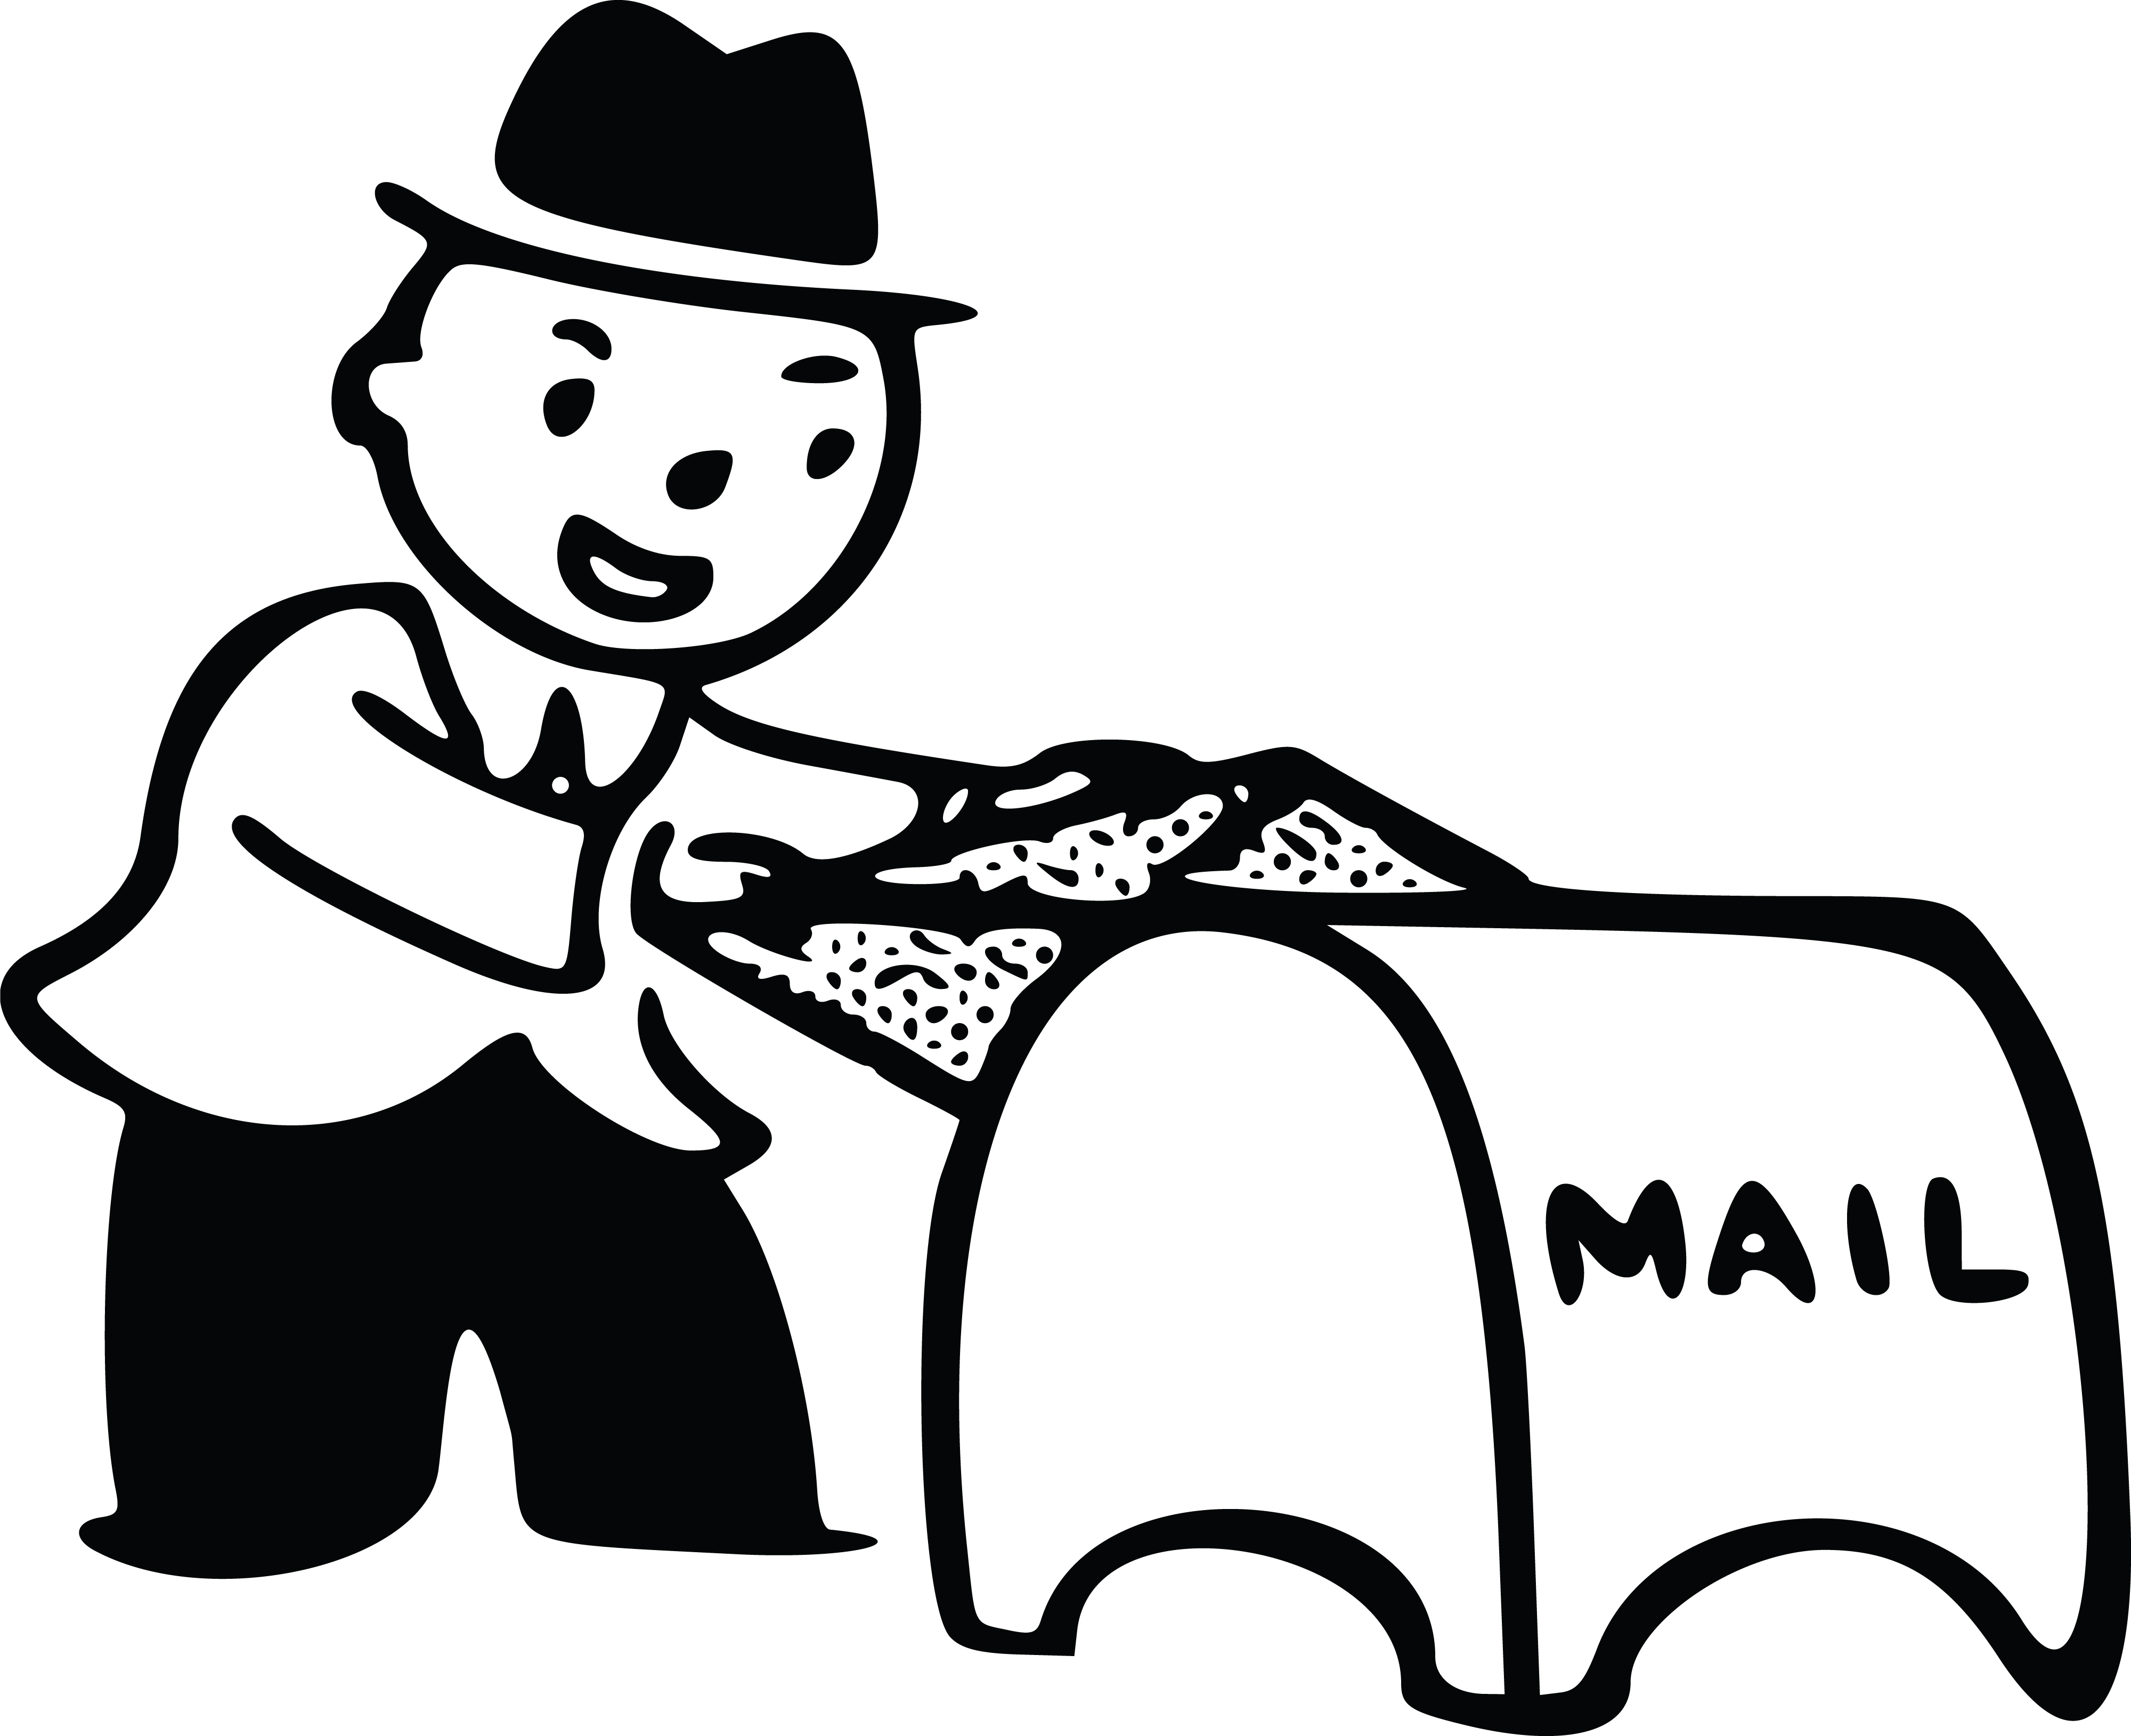 Free Clipart Of A man putting mail in a drop box.